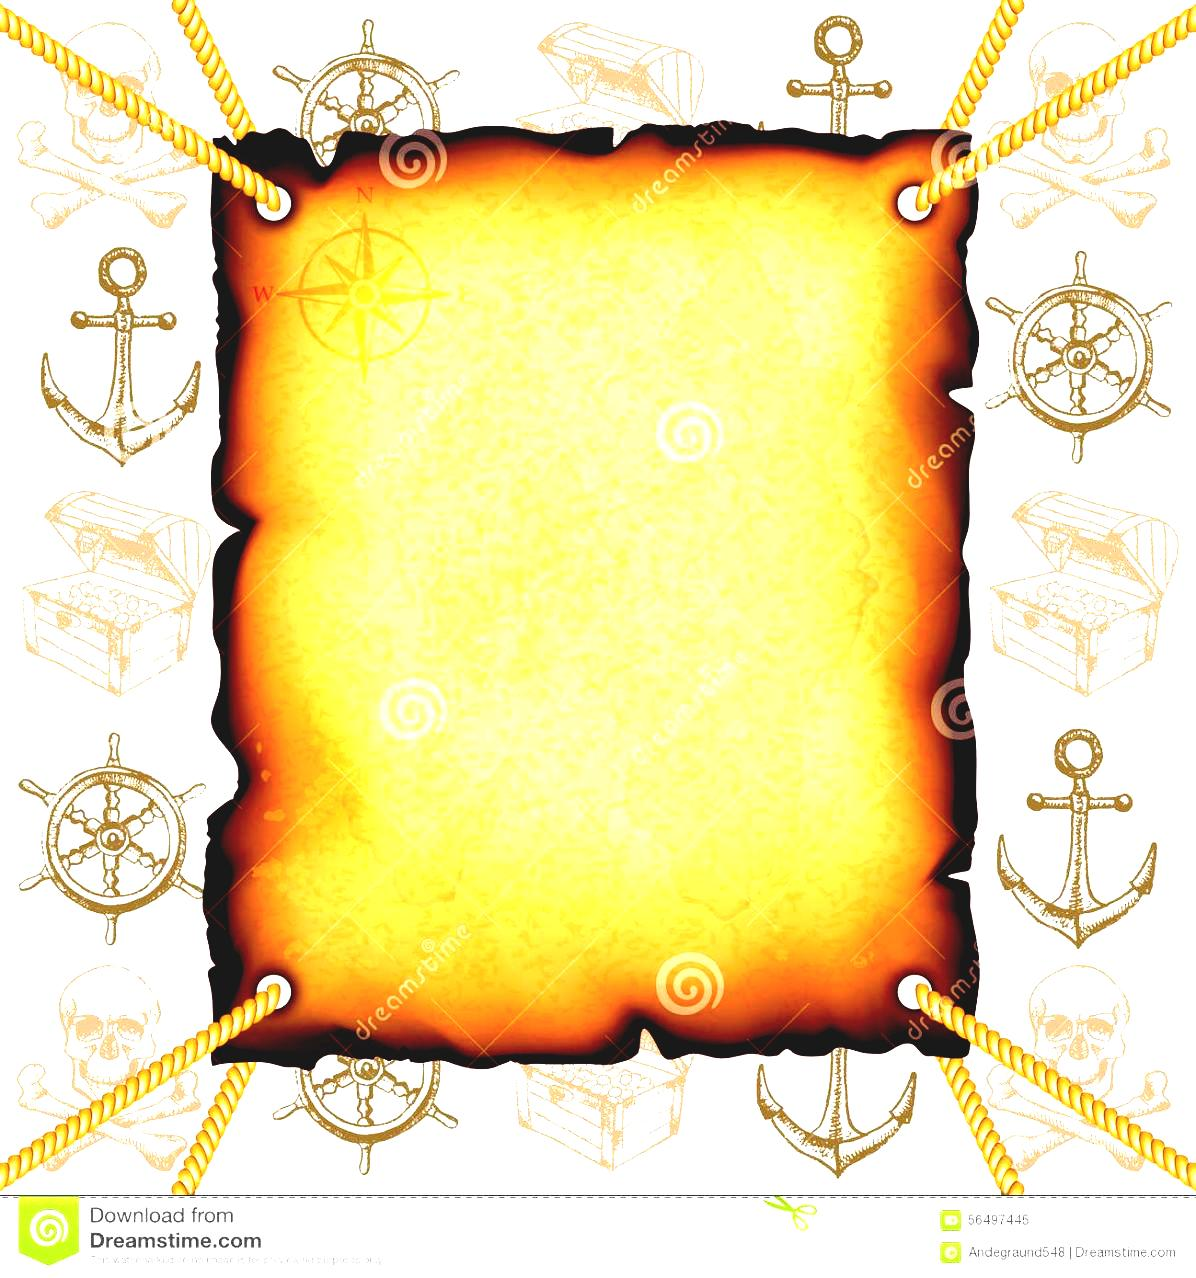 Adventure Map Clipart Old Background Compass Discovery Concept.